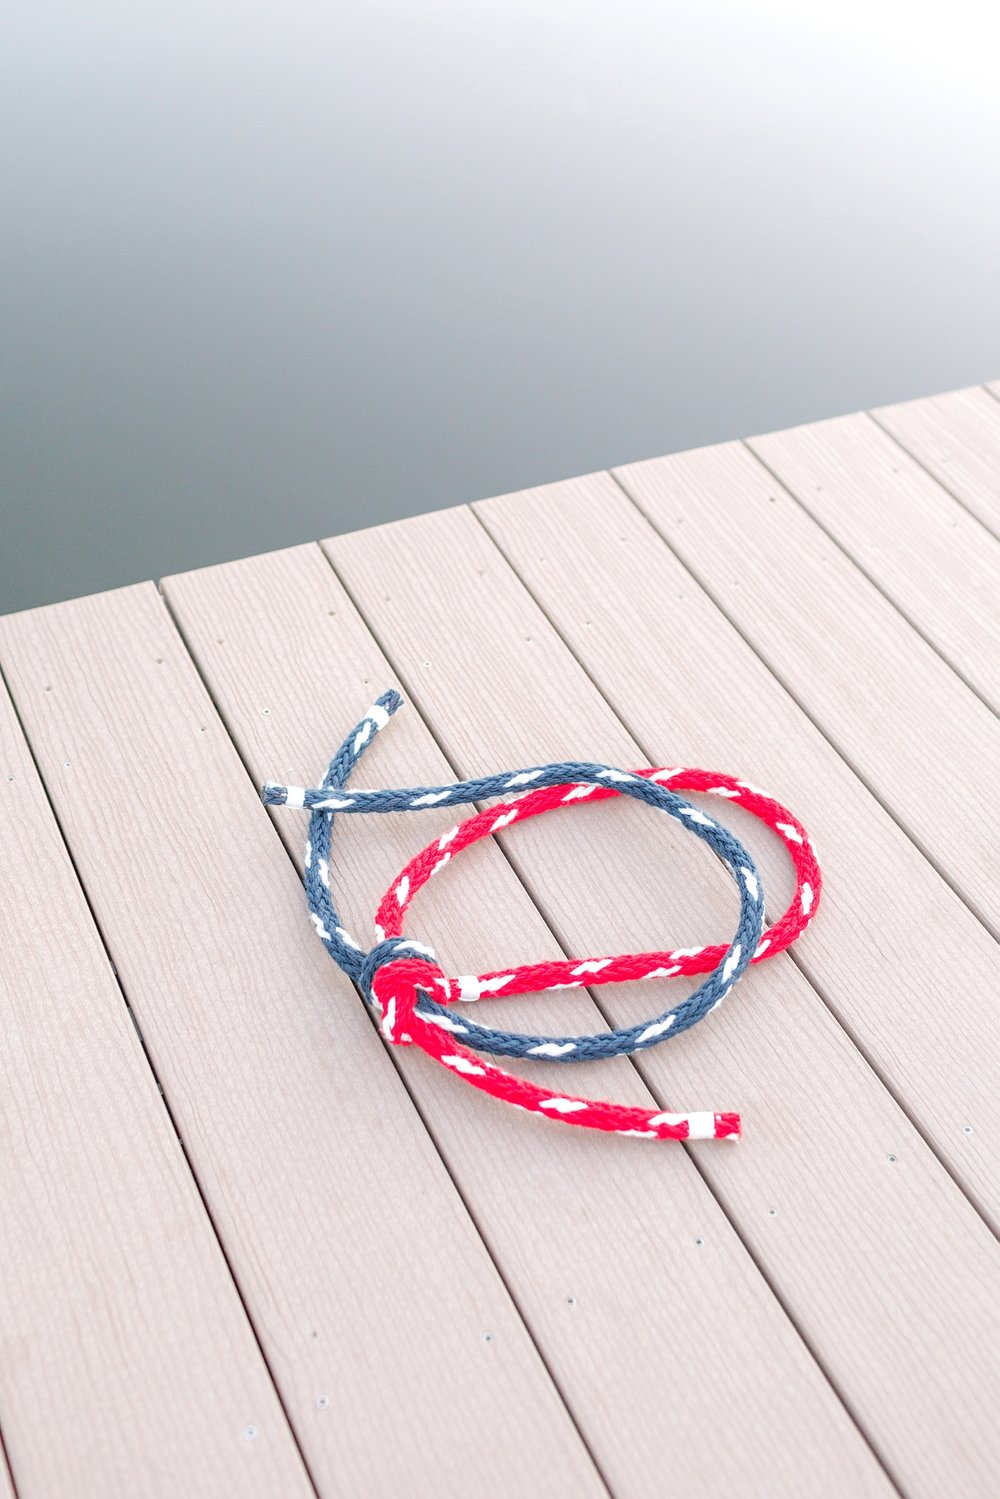 Rob & Alyson tied this rope at their Ceremony! It went so well with their nautical theme.